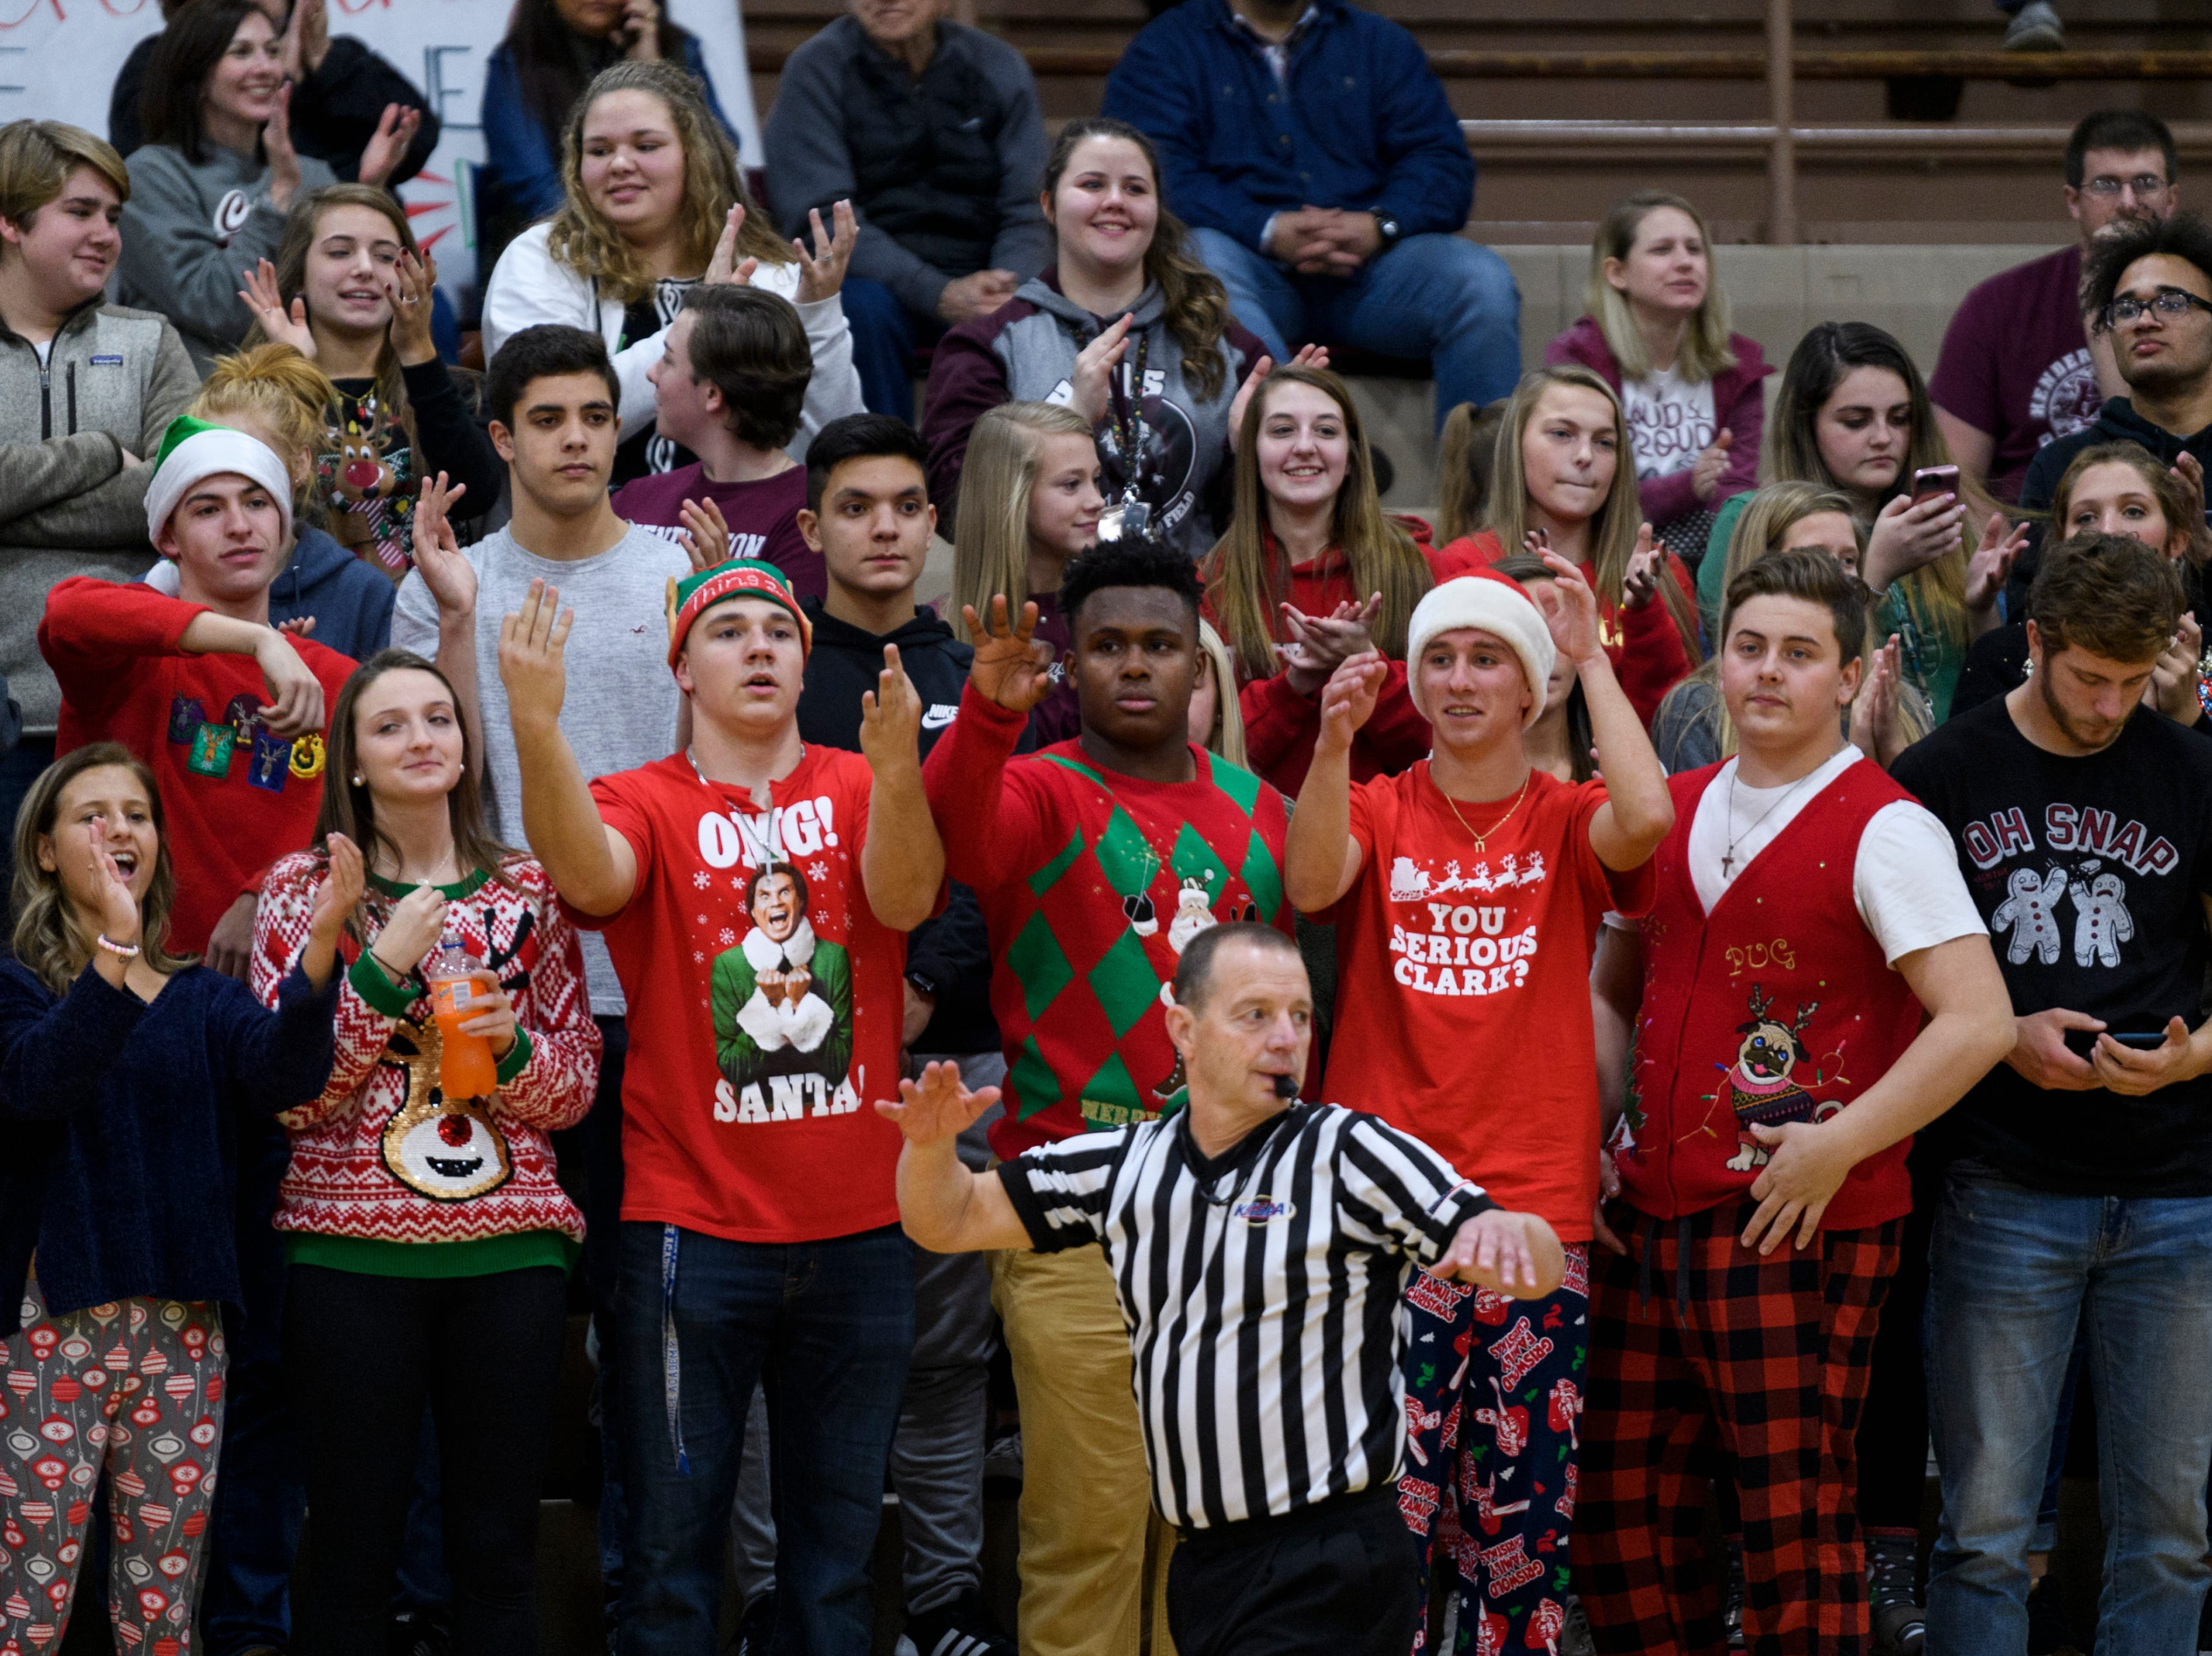 The Henderson County Colonels student section reacts to their team putting more points on the board against the Crittenden County Rockets at Henderson County High School in Henderson, Ky., Tuesday, Dec. 18, 2018. The Colonels defeated the Rockets 88-52.